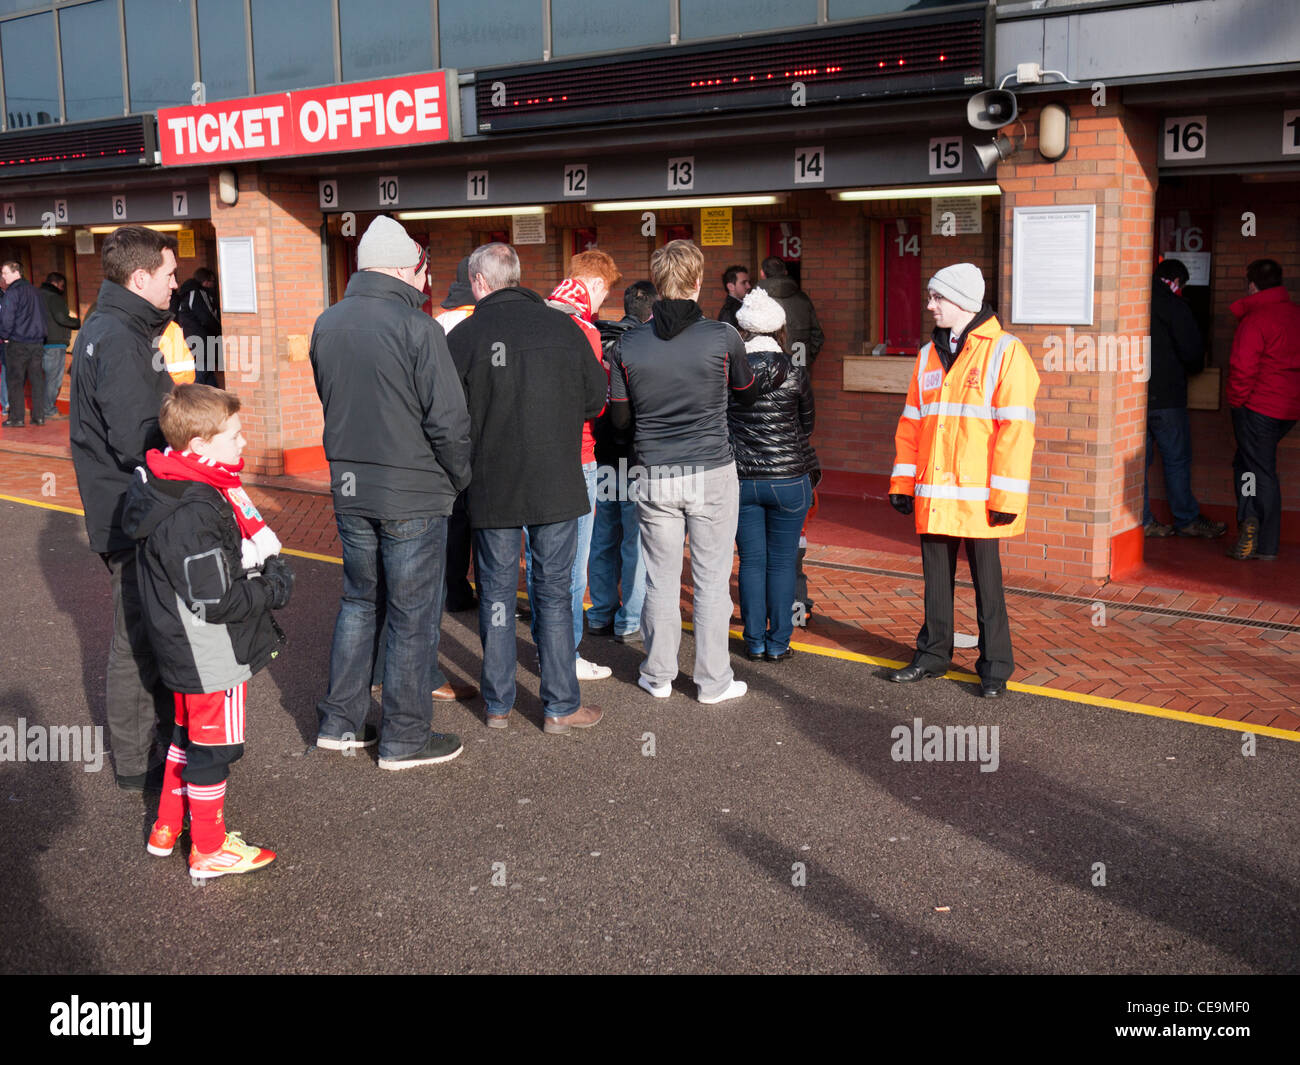 Football supporters queuing at ticket kiosk at Anfield football ground Liverpool England - Stock Image